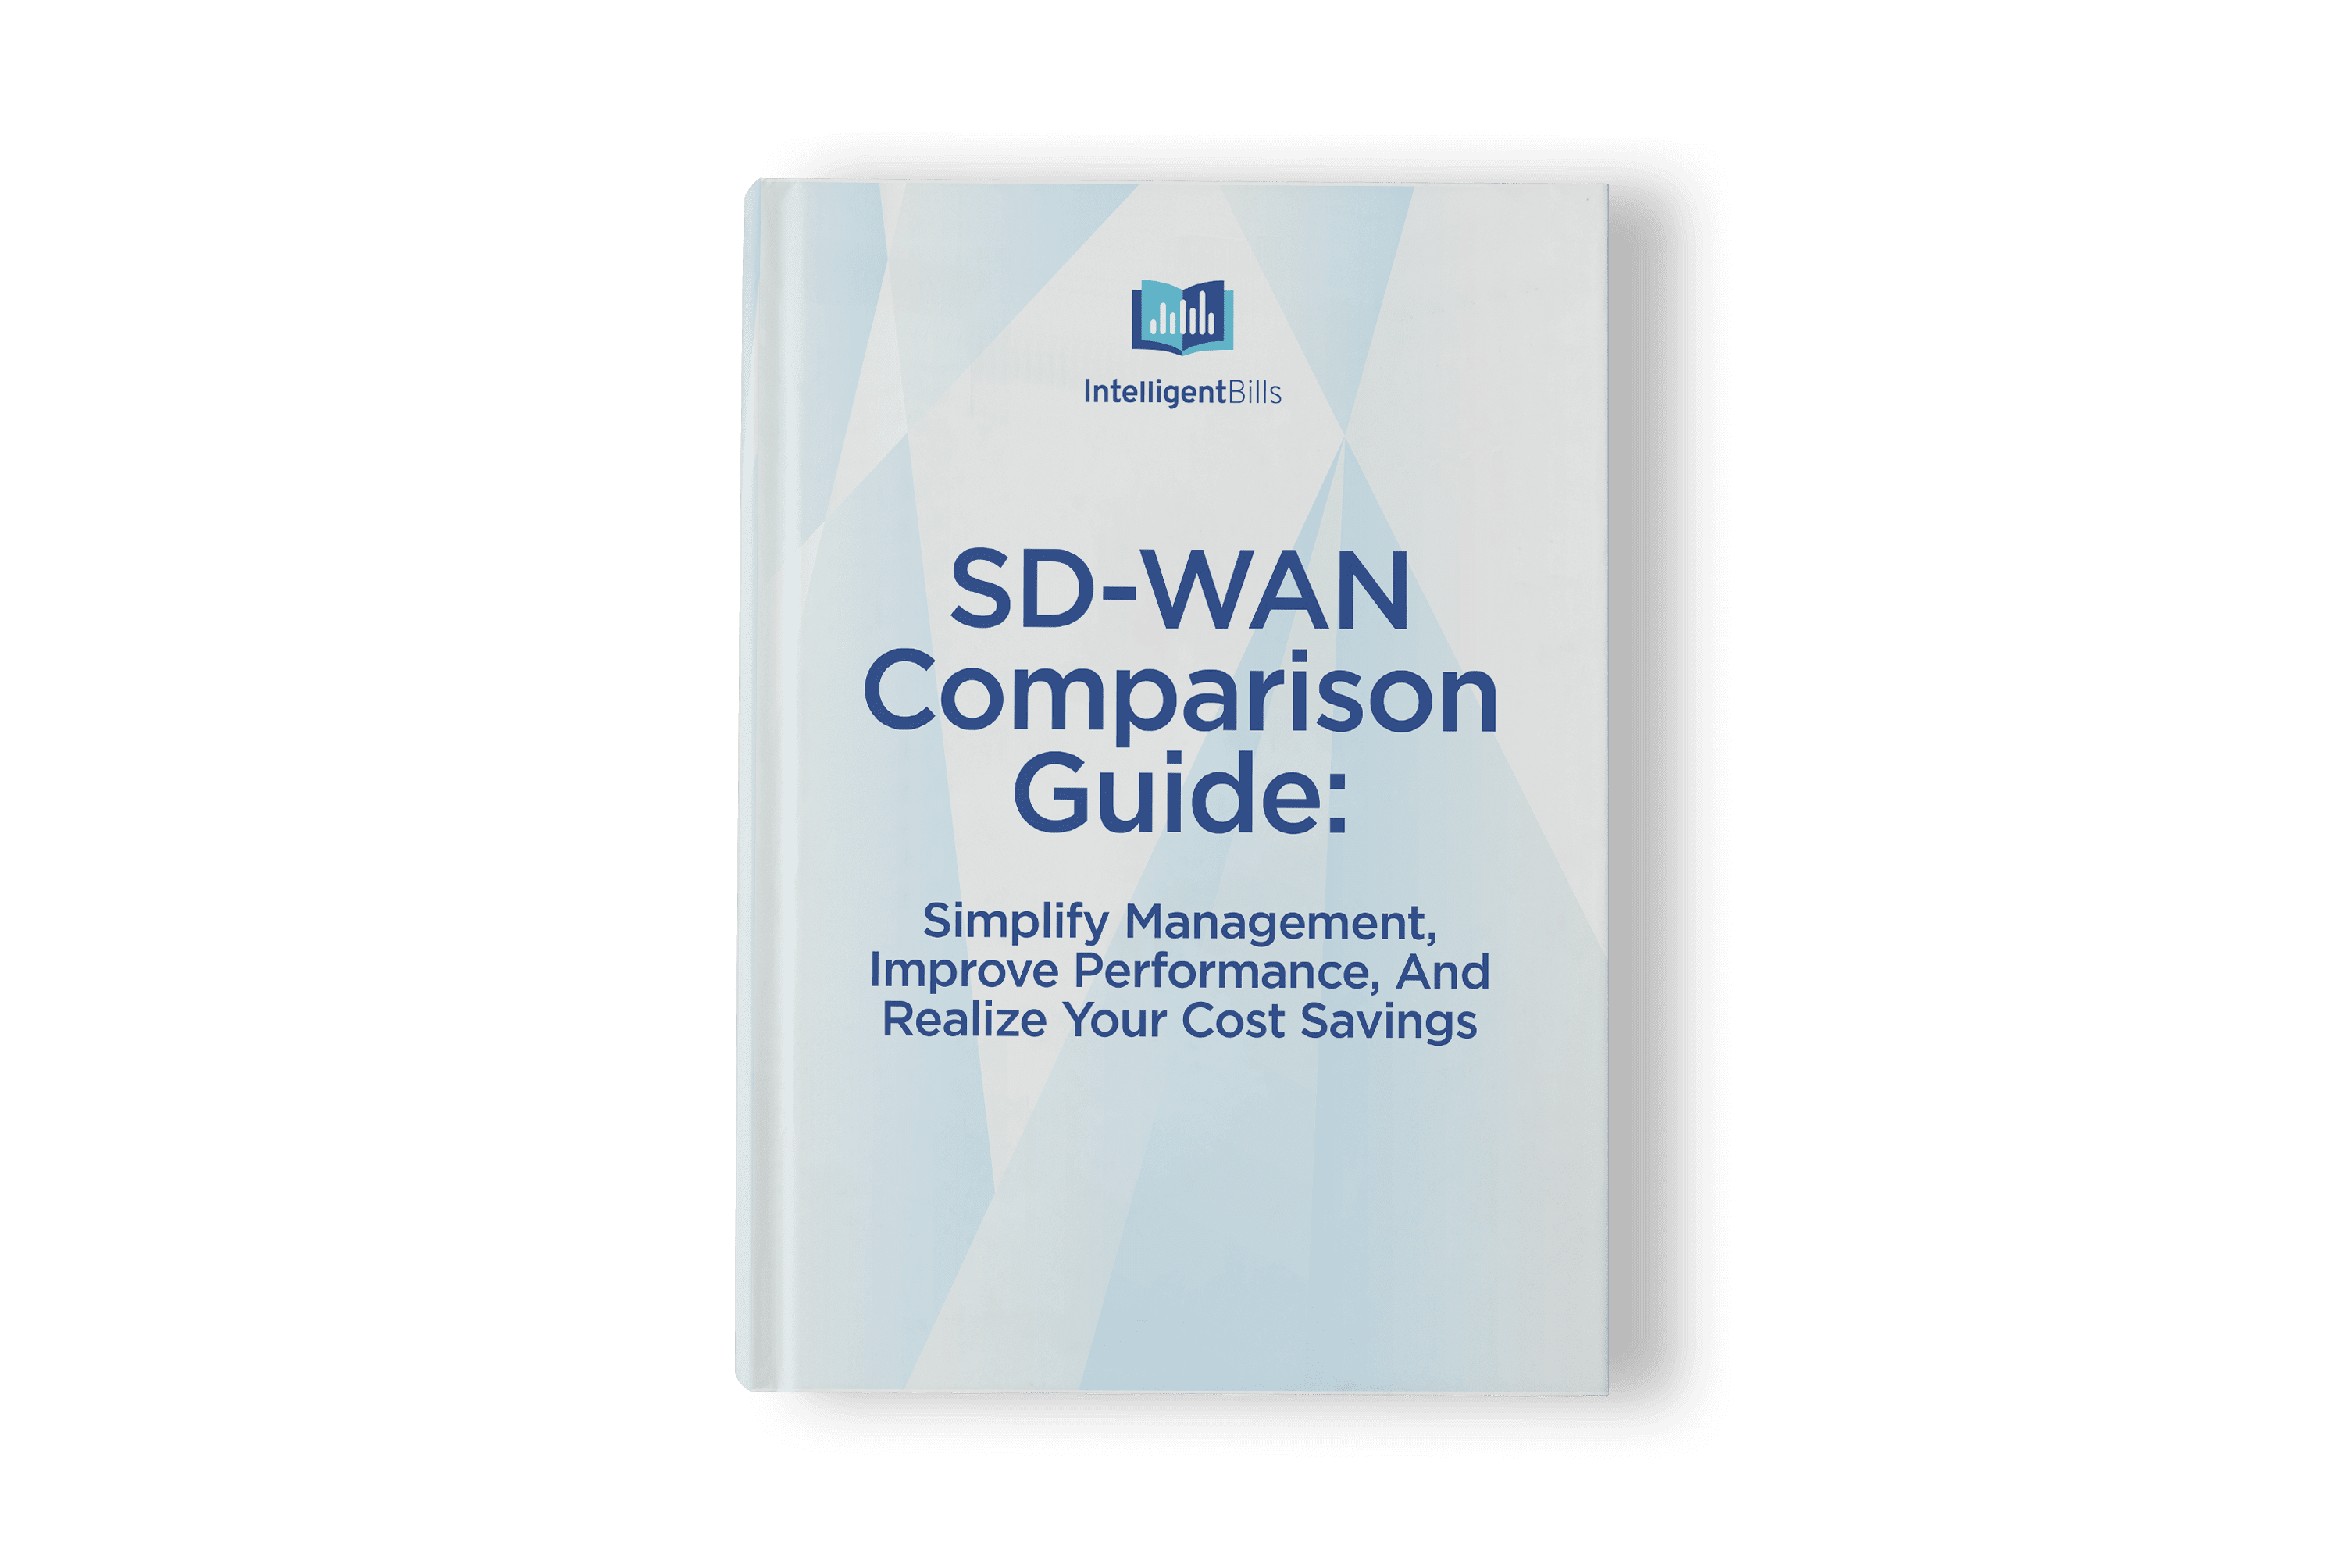 sd-wan comparison guide light